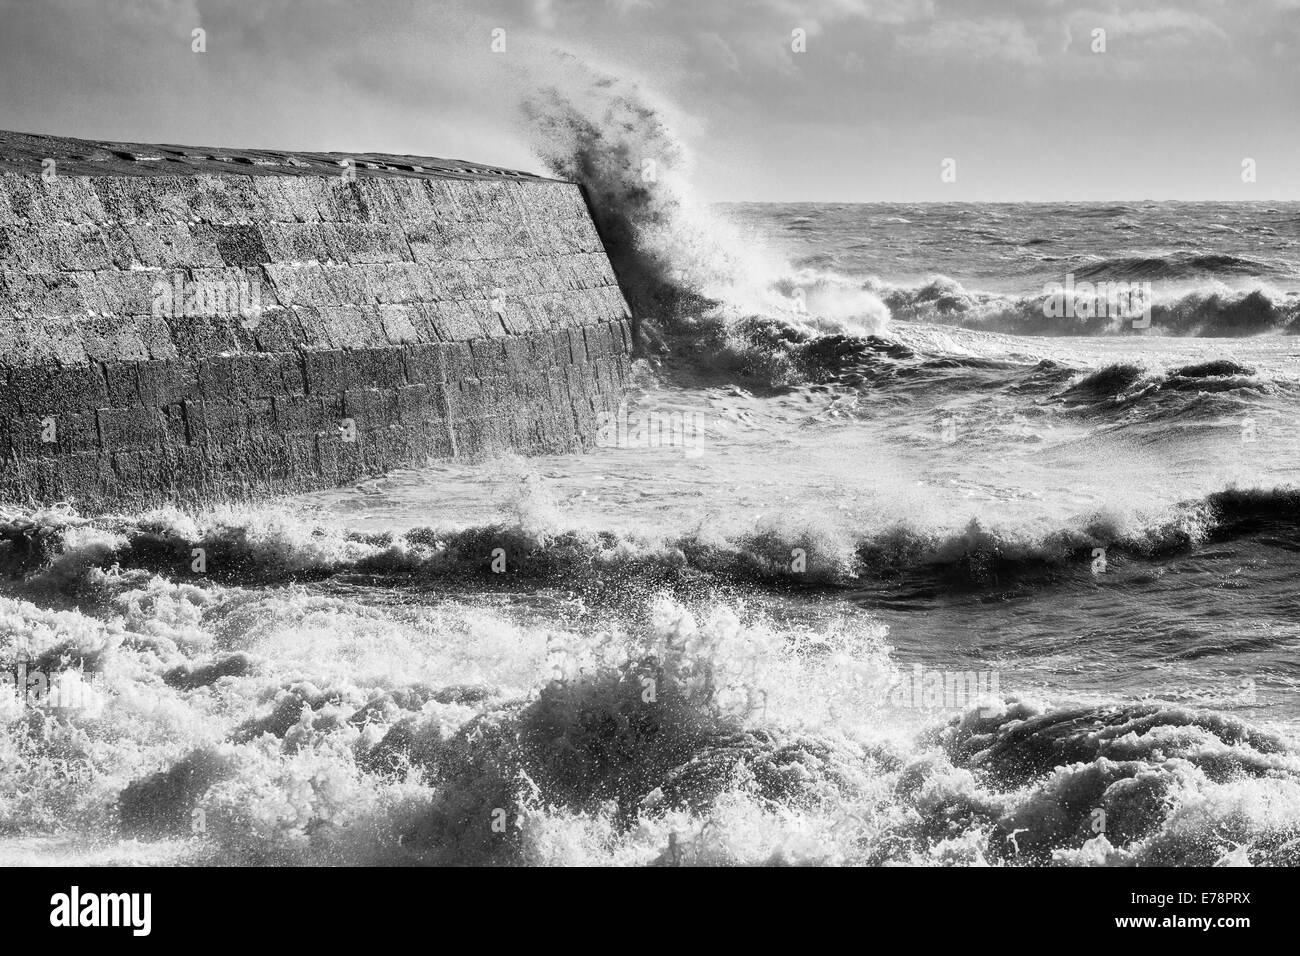 storm waves breaking over the Cobb at Lyme Regis, Jurassic Coast, Dorset, England. - Stock Image